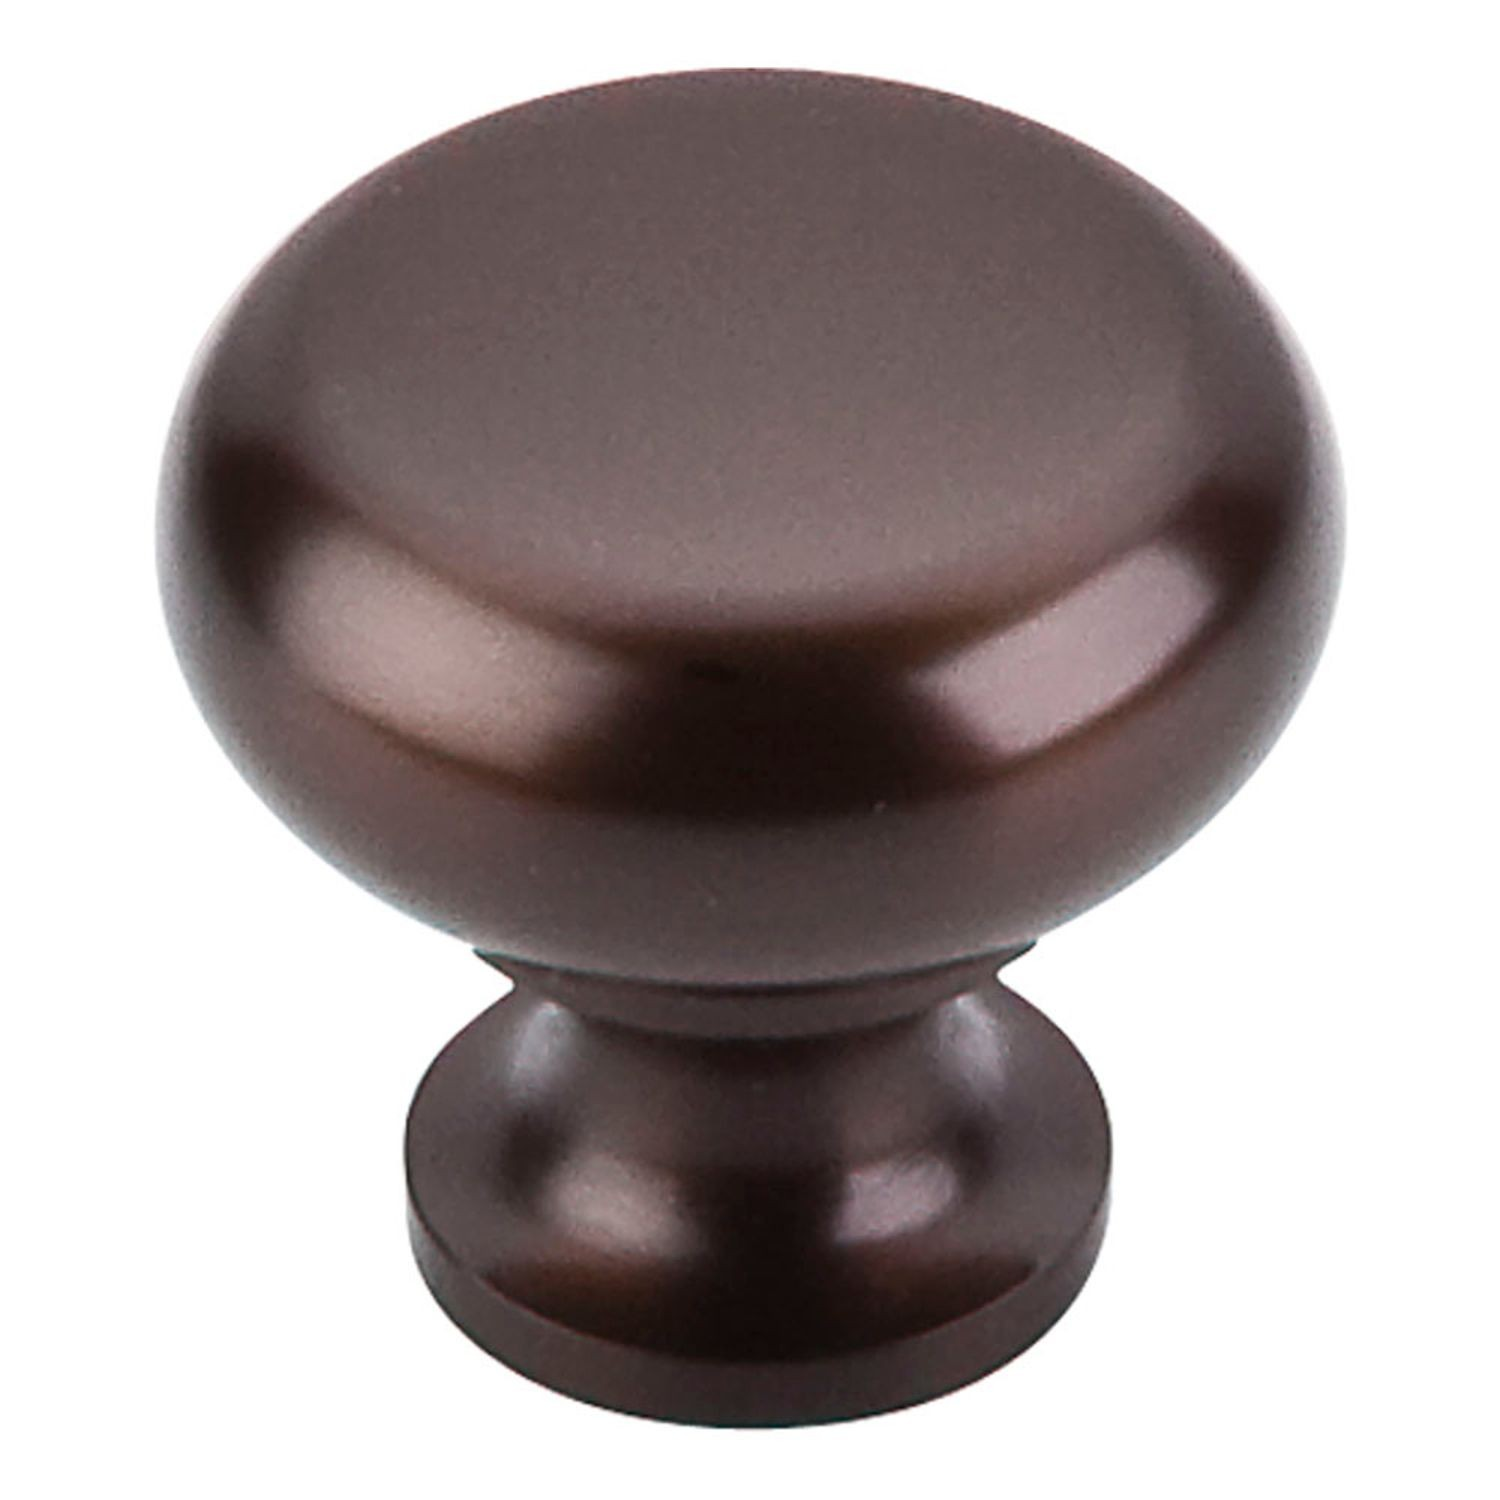 "1 1/4"" Flat Faced Knob Oil Rubbed Bronze"